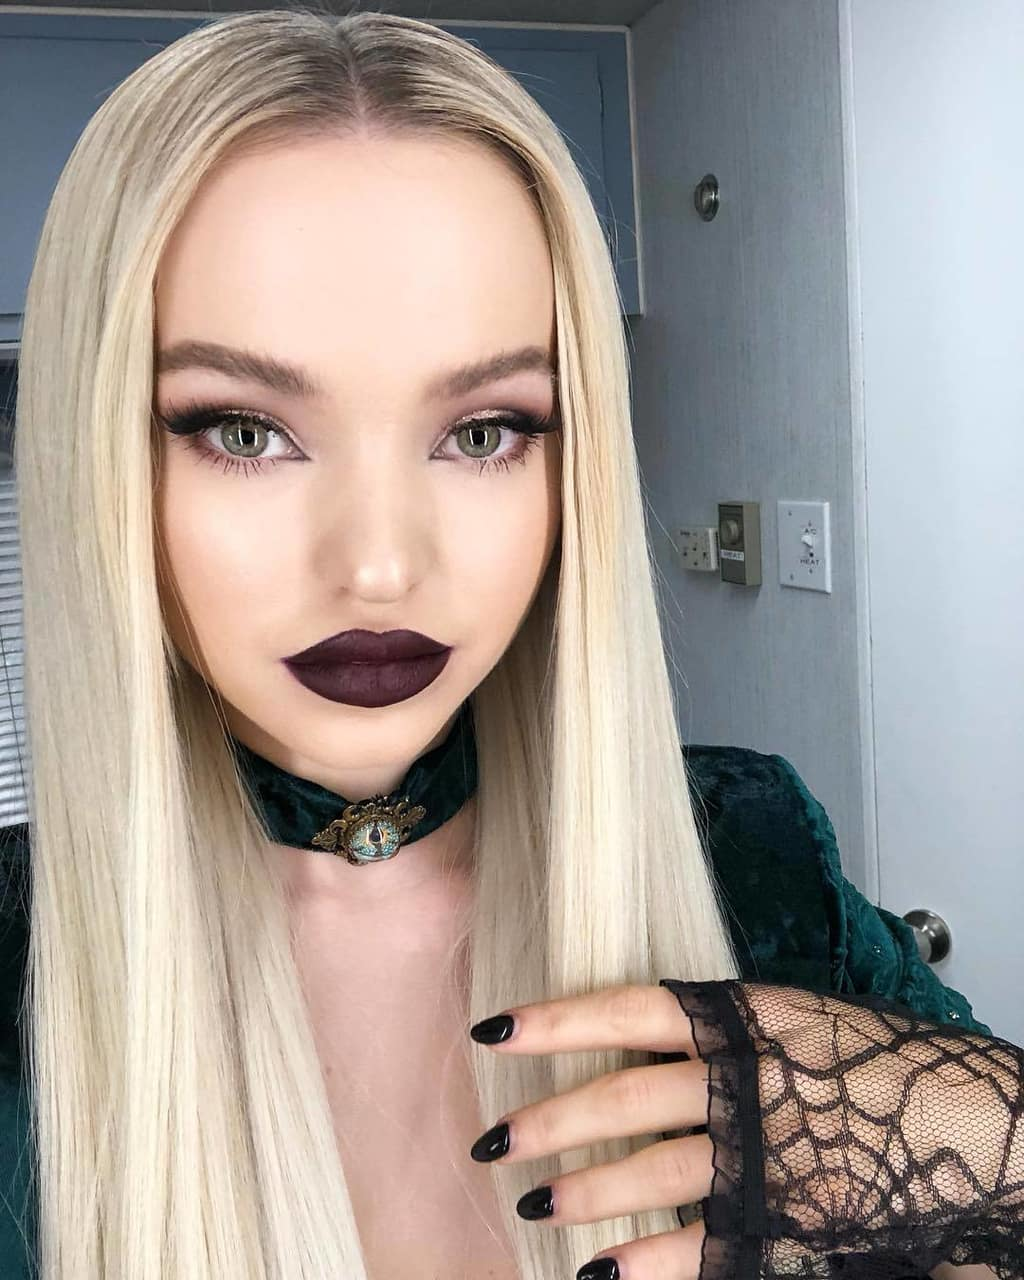 Dove Cameron Halloween Pics - Dove Cameron Net Worth, Pics, Wallpapers, Career and Biography